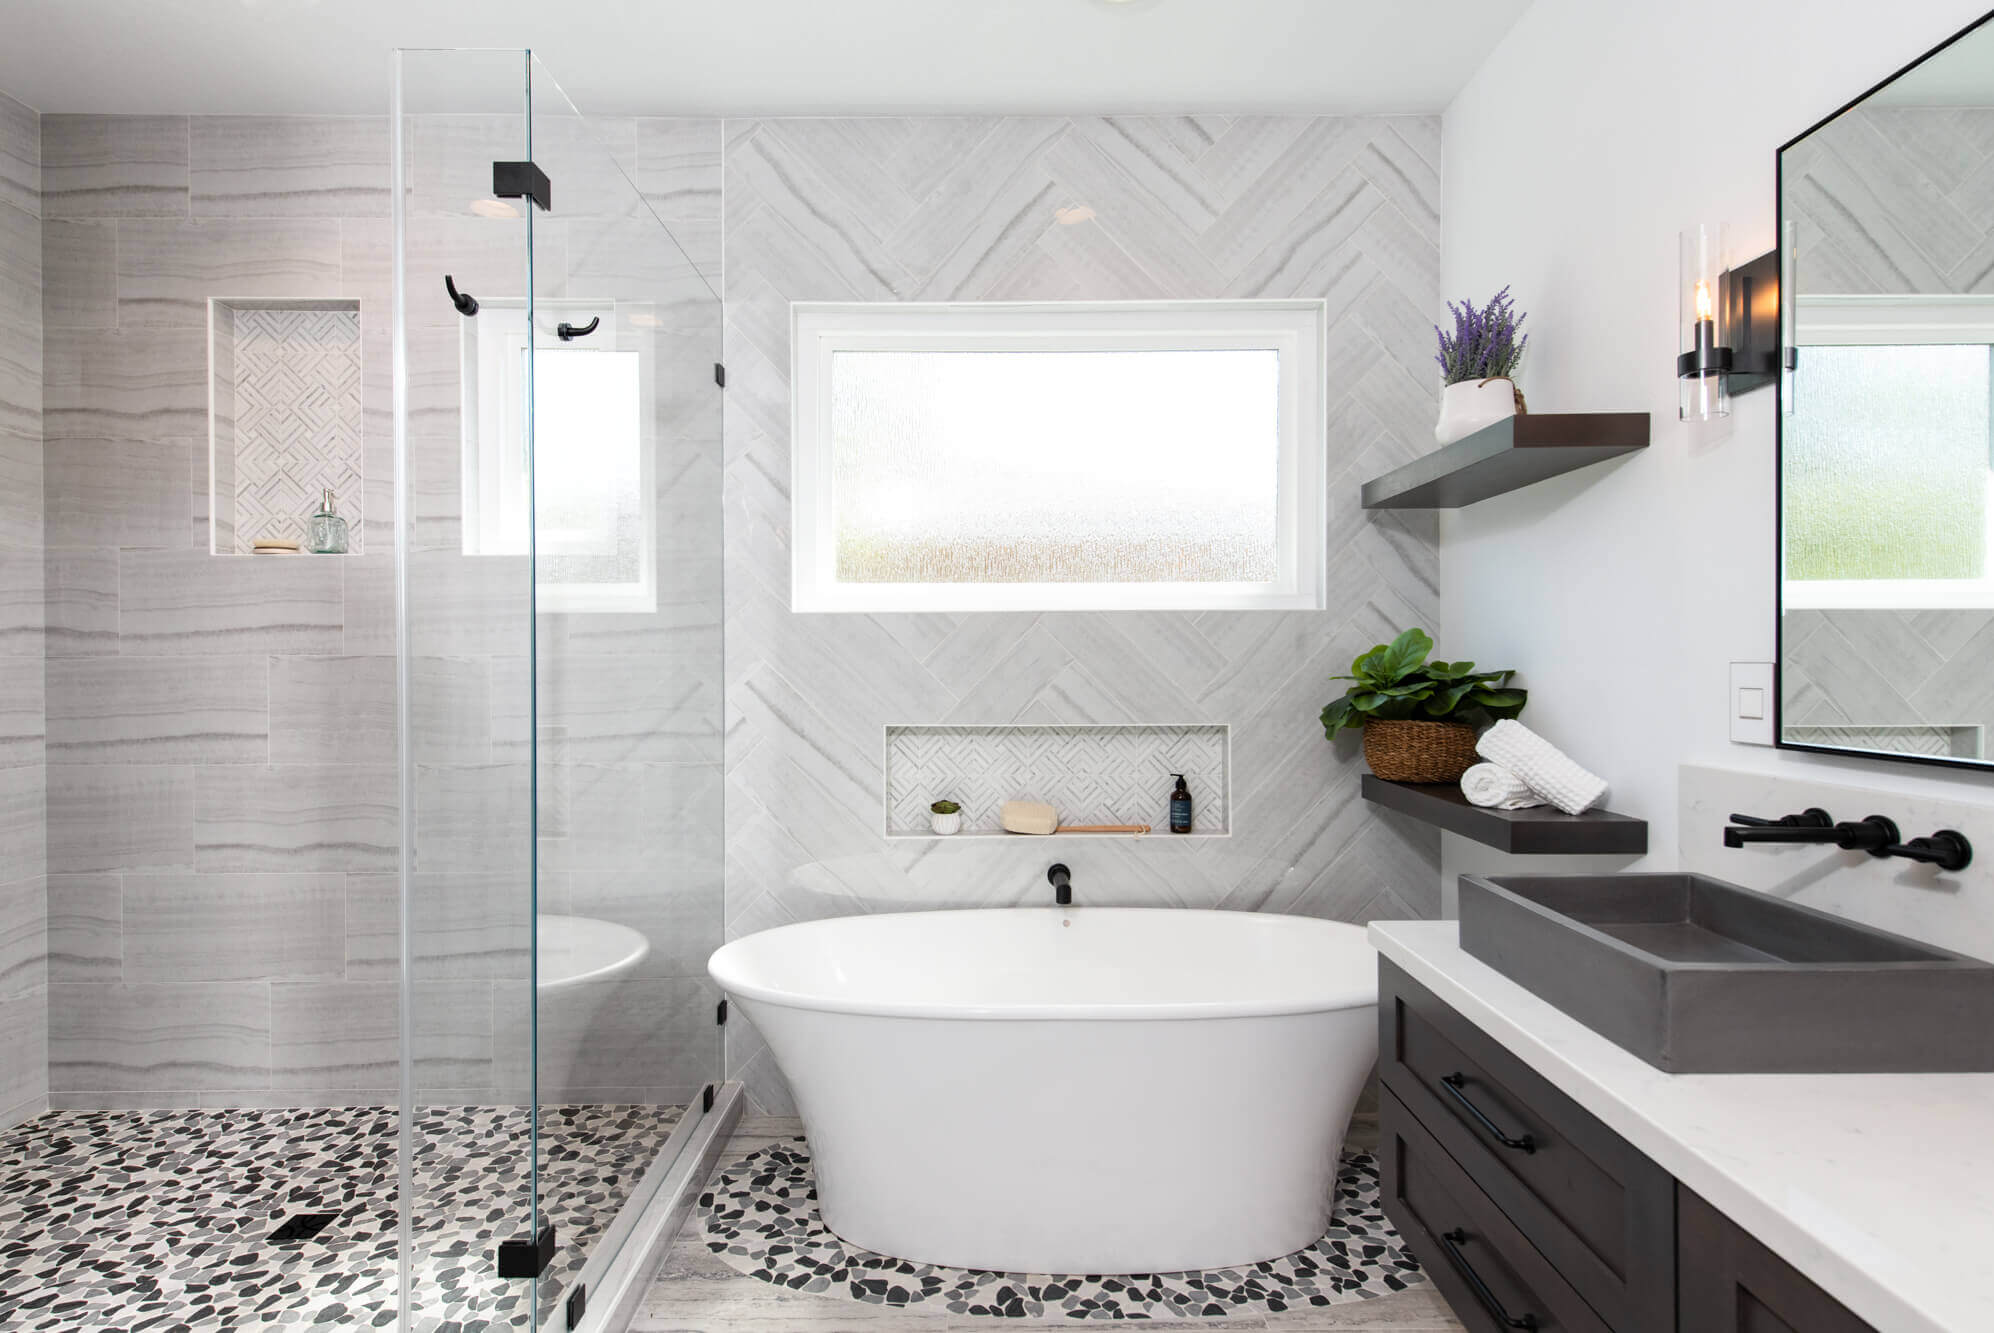 athroom with white and brown accents